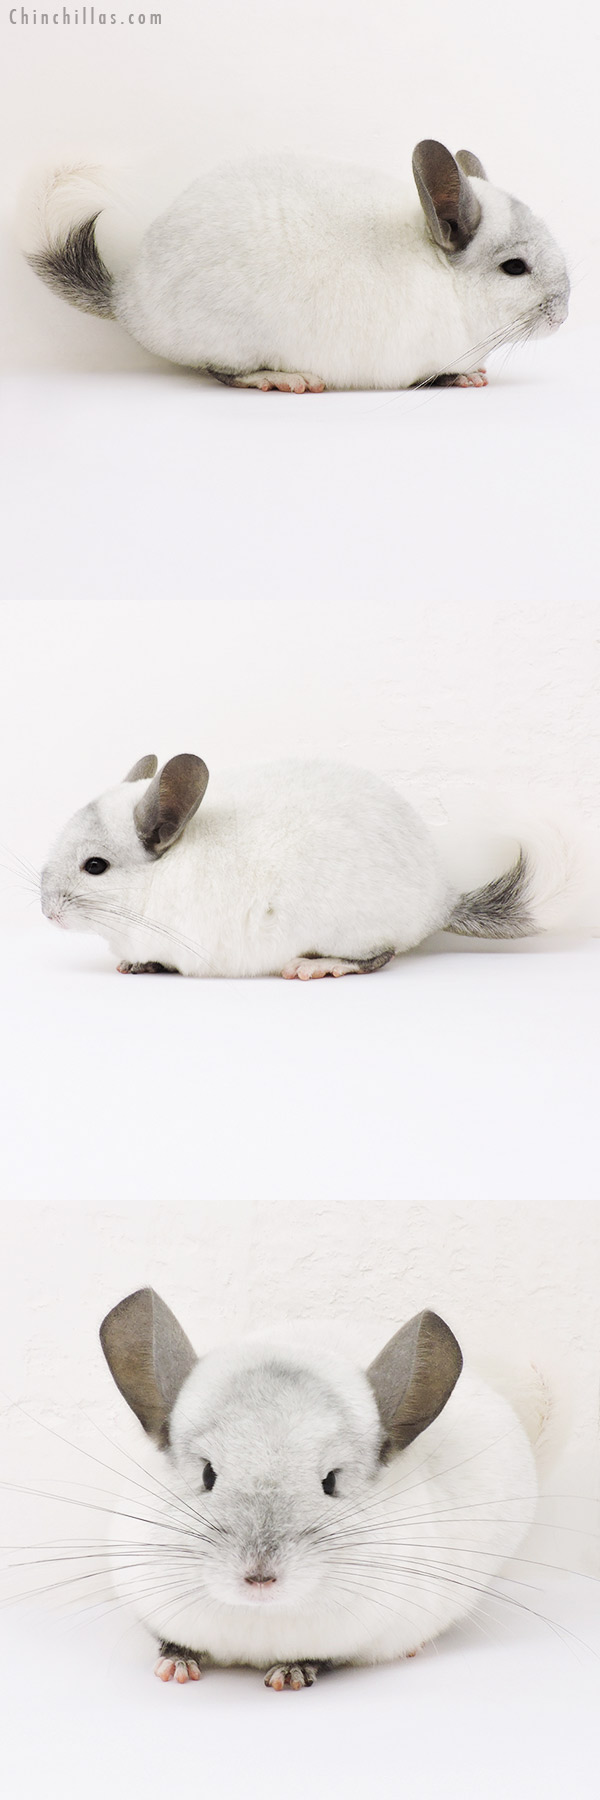 15181 White Mosaic ( Ebony & Locken Carrier ) Female Chinchilla